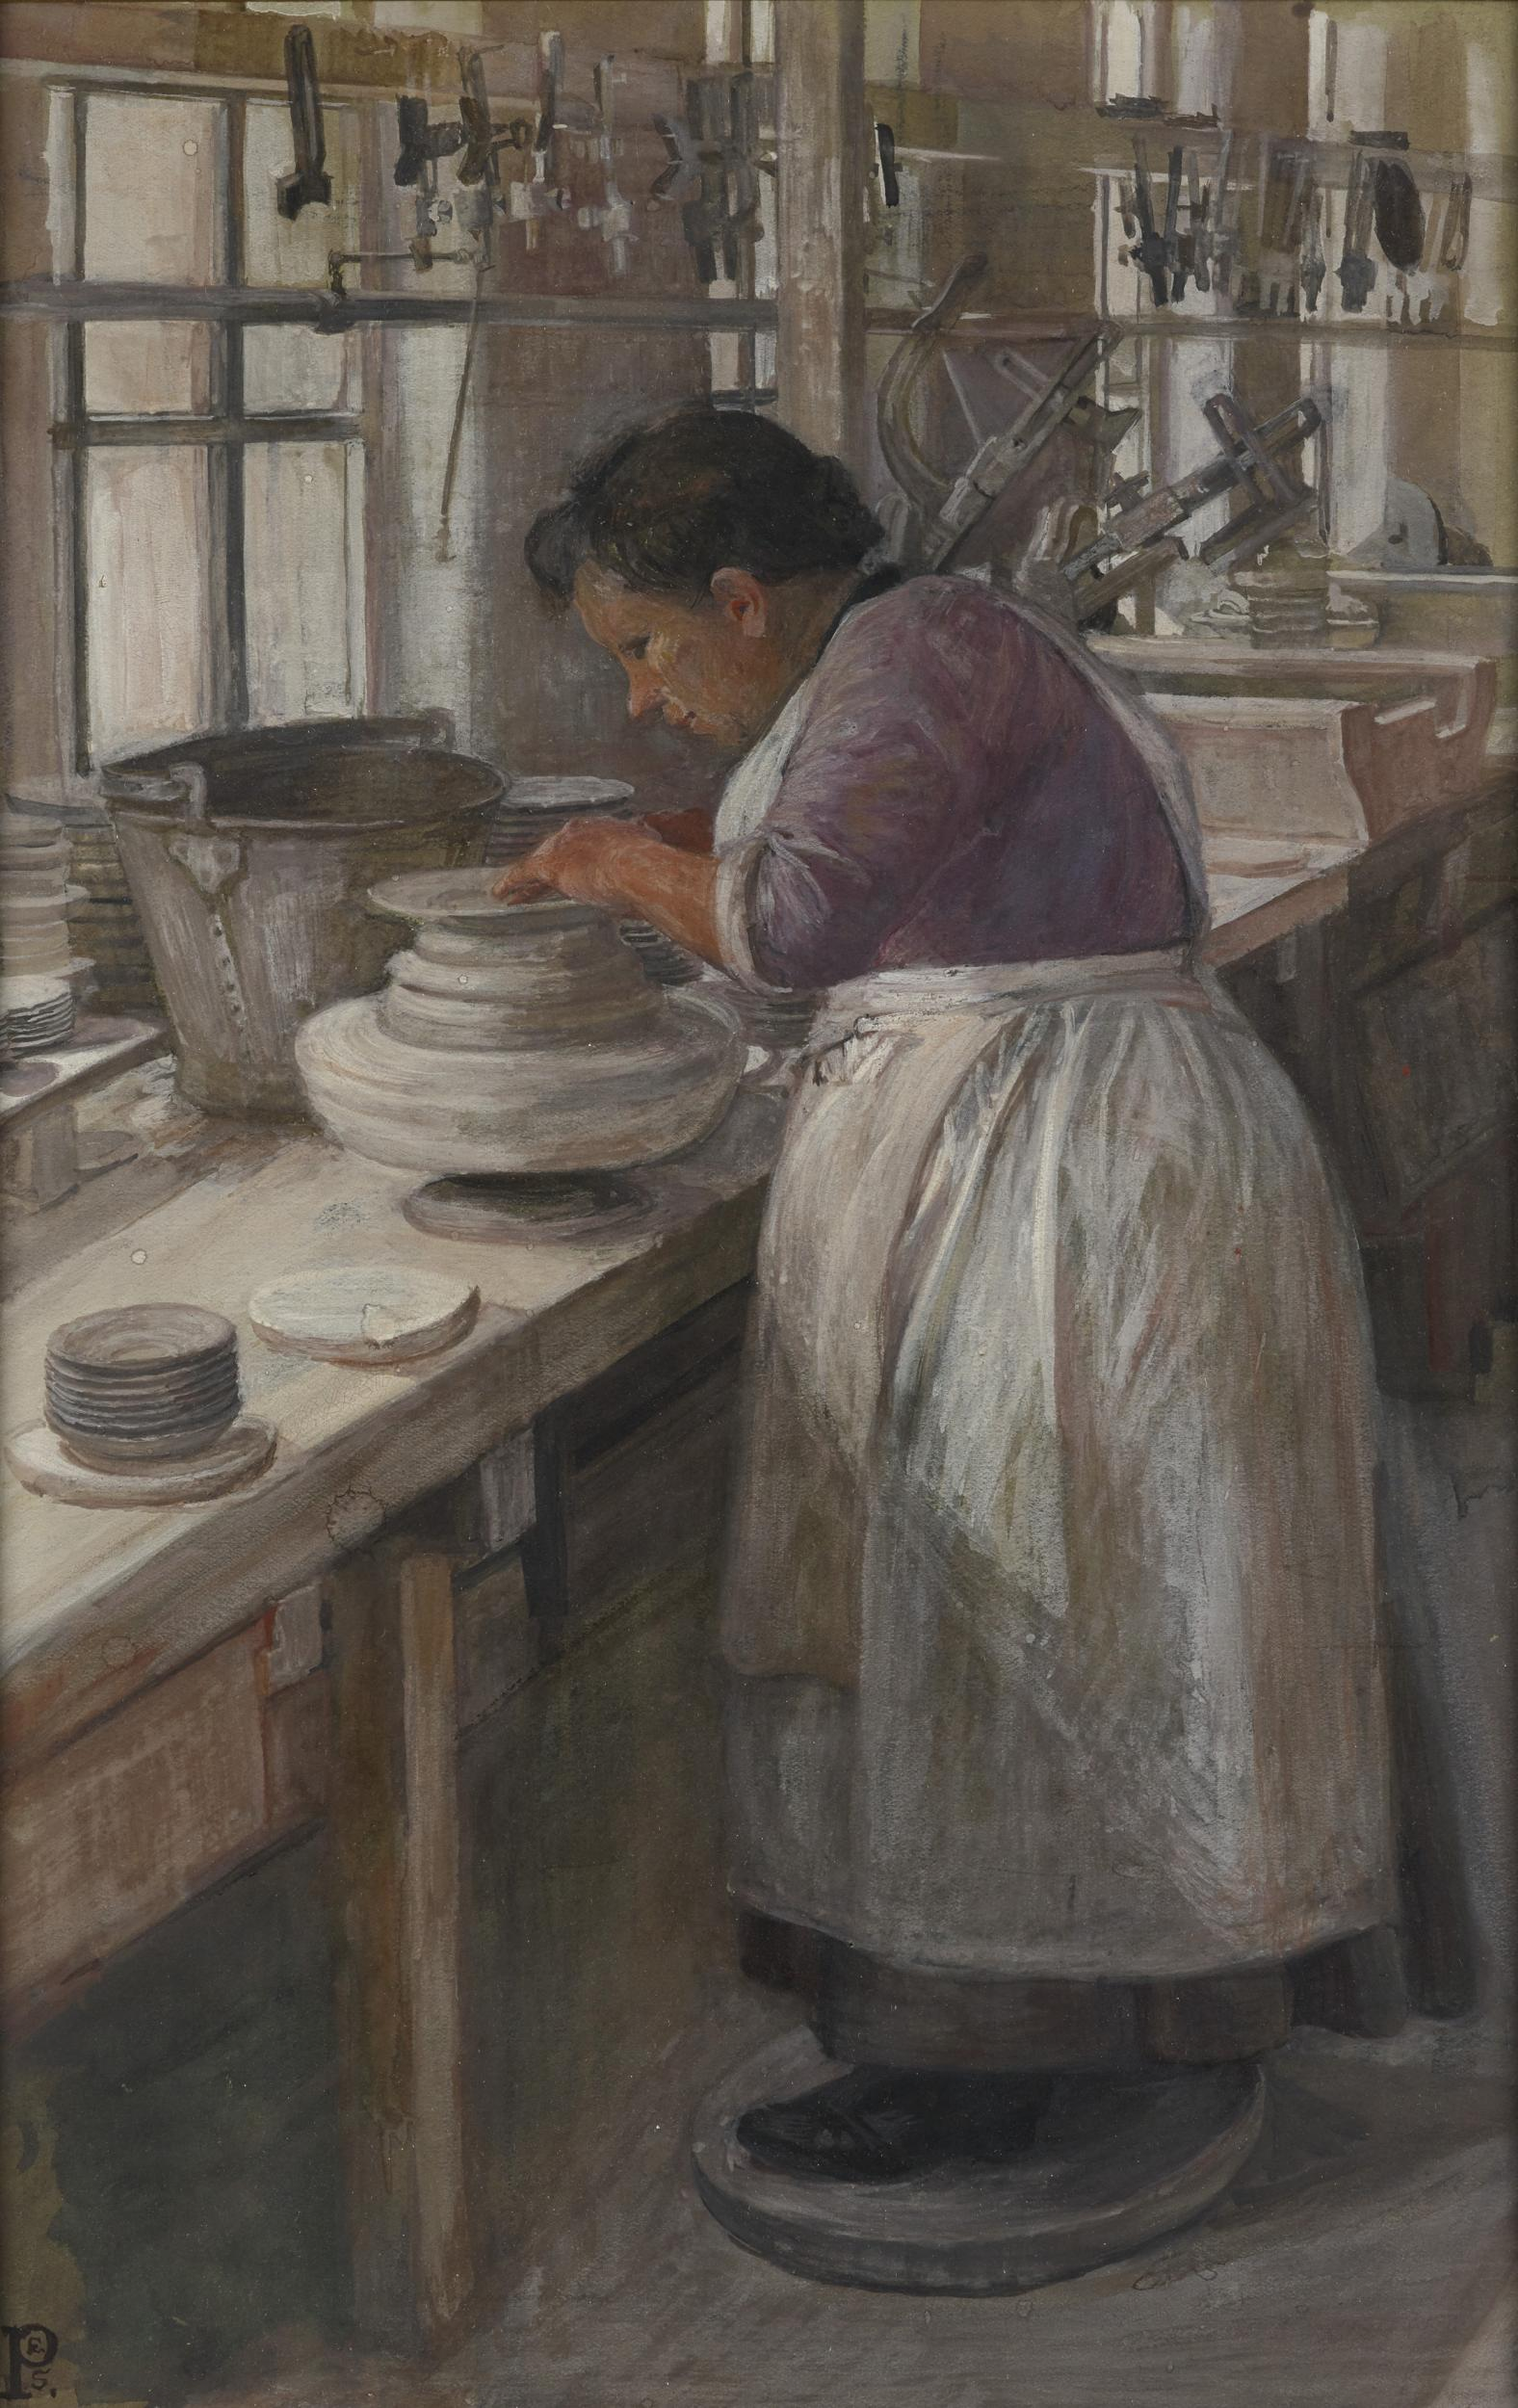 Sylvia Pankhurst, On a Pot Bank: Finishing Off the Edges of the Unbaked Plates on a Whirler 1907